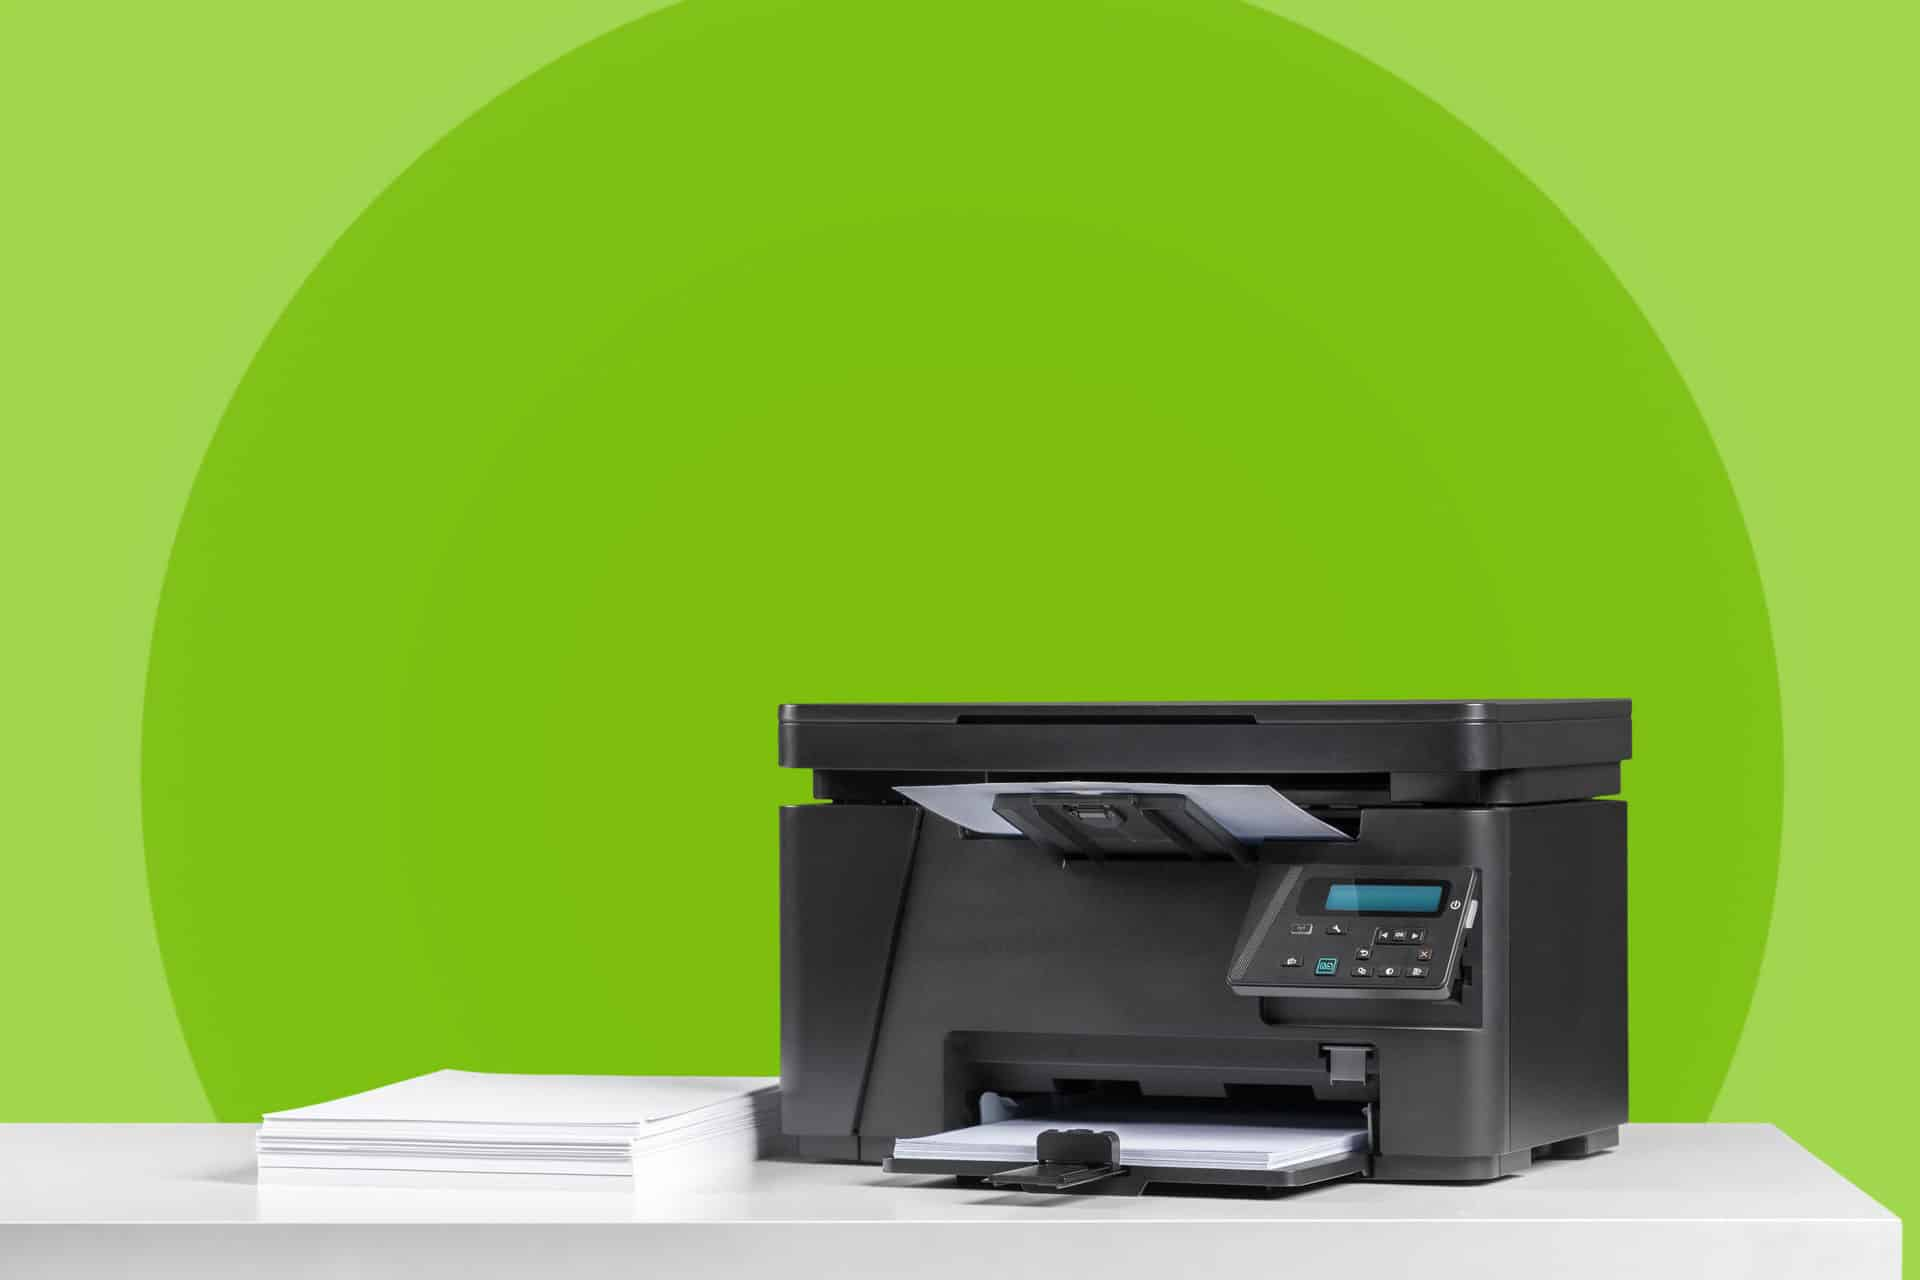 Laser Photo Printers vs. Inkjet: Which Is Better For You?